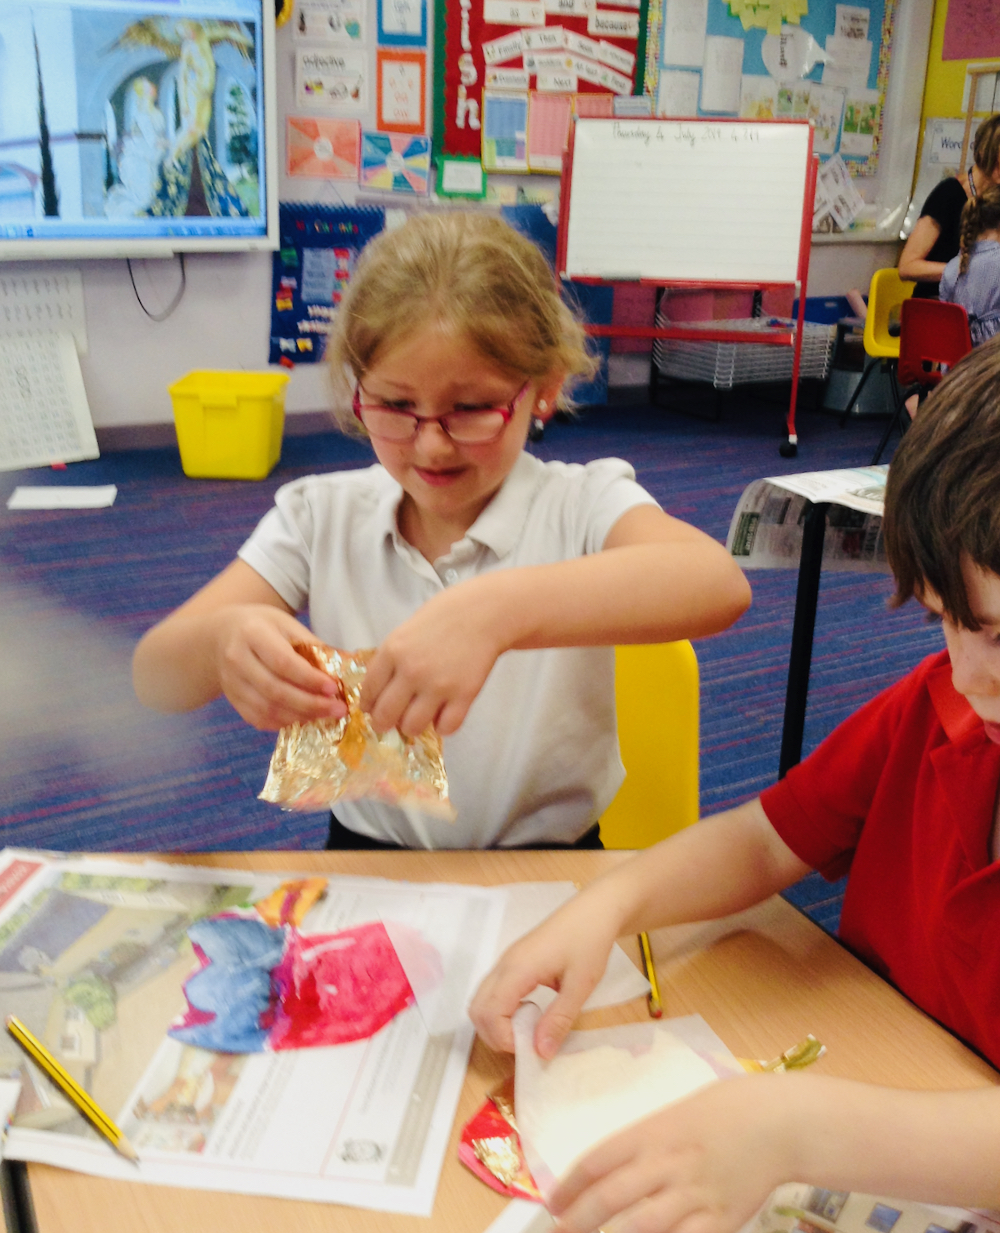 A Year One girl gently rips gold leaf to apply to her brightly painted leaf at Hauxton Primary School for Inspire with Pamela Stewart